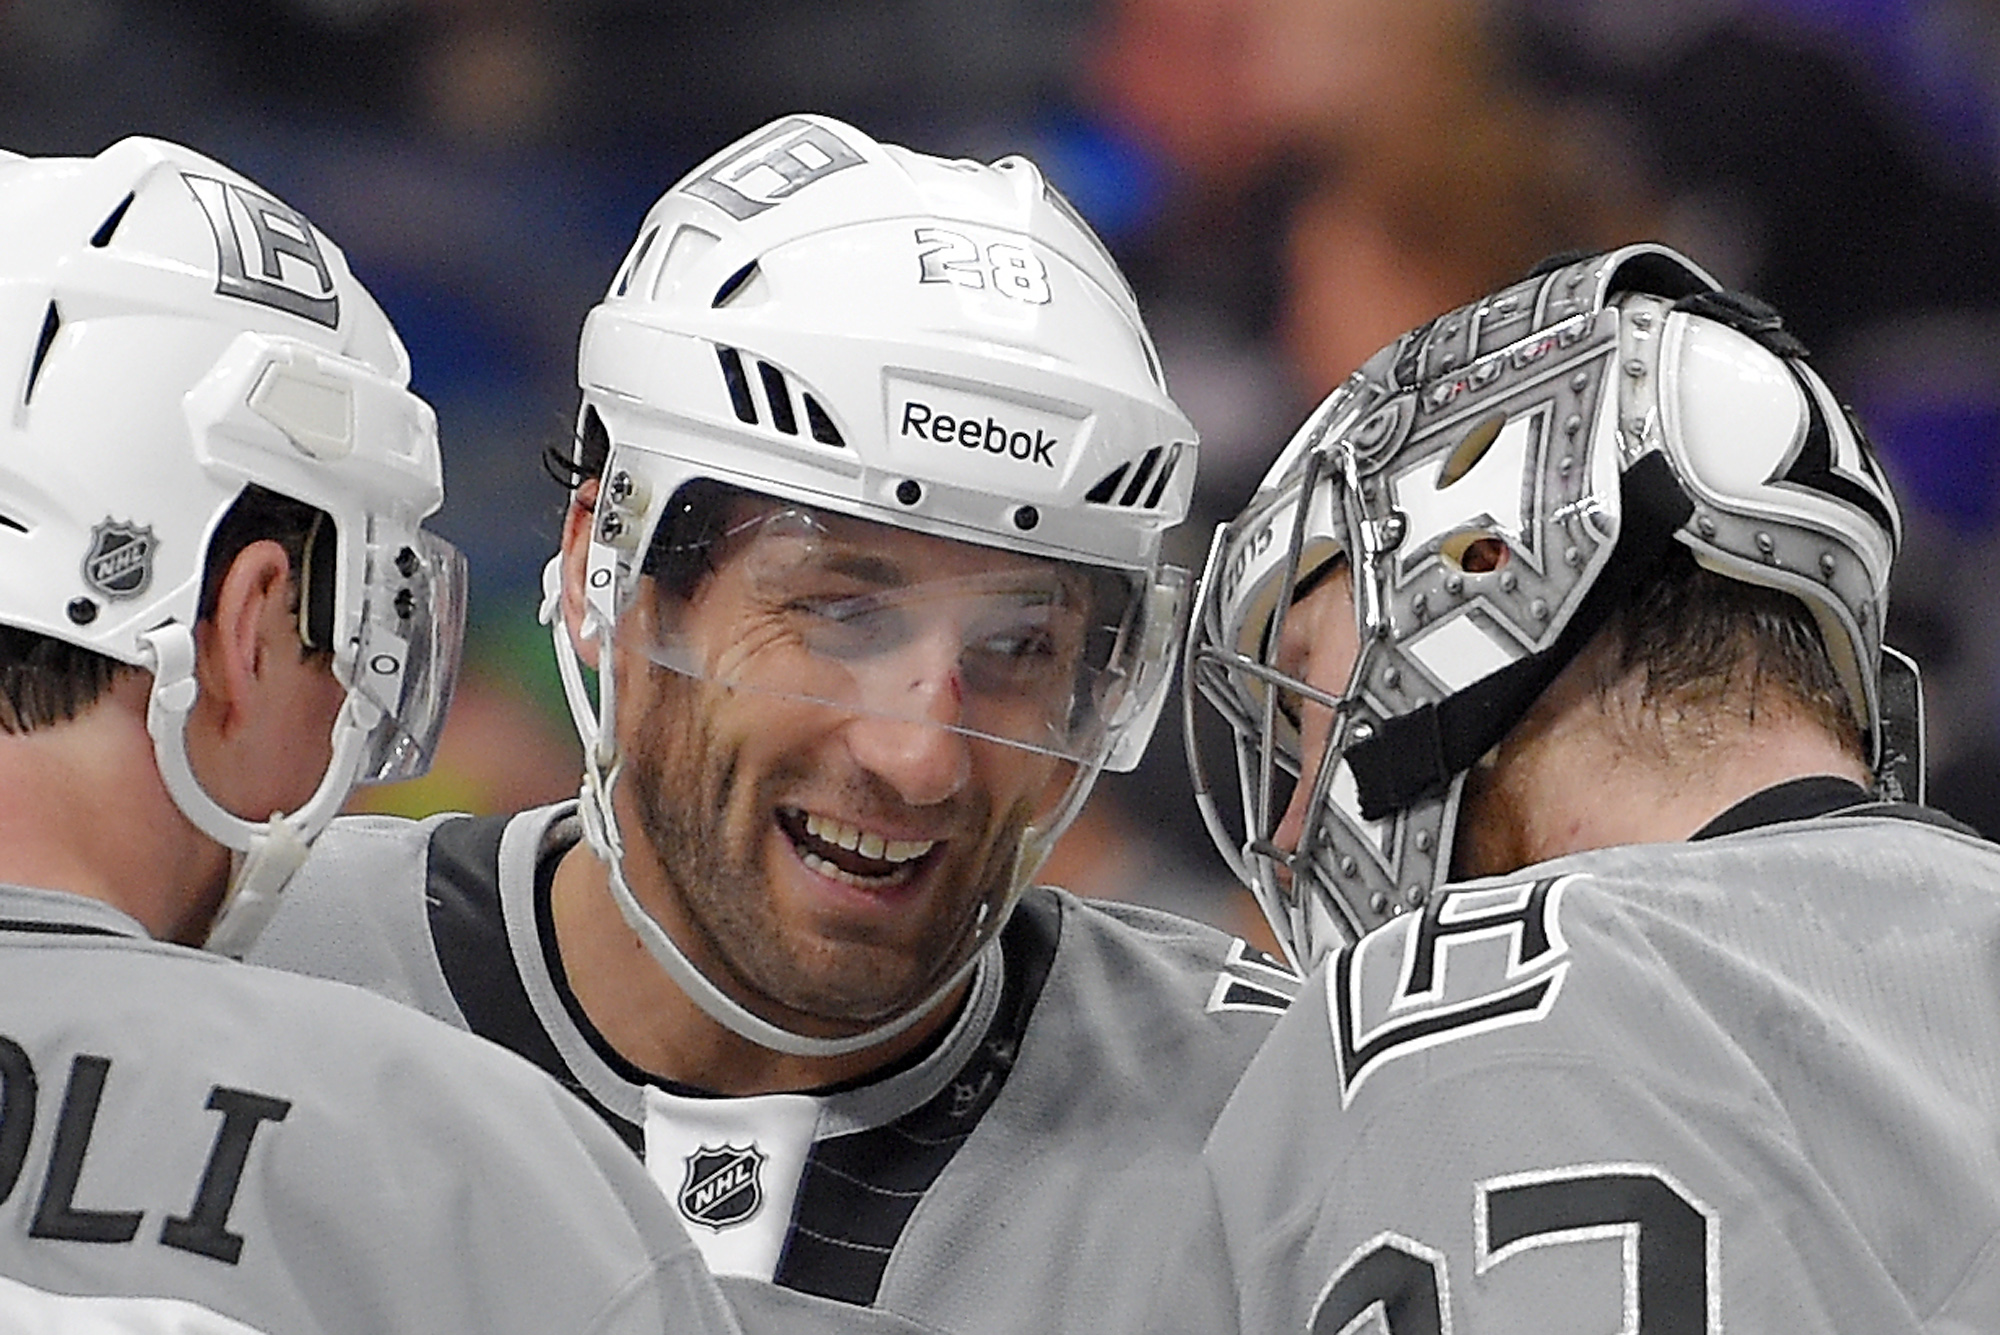 Jarret Stoll Charges: It Does Not Sound Good For The Kings Forward And Pending Unrestricted Free Agent